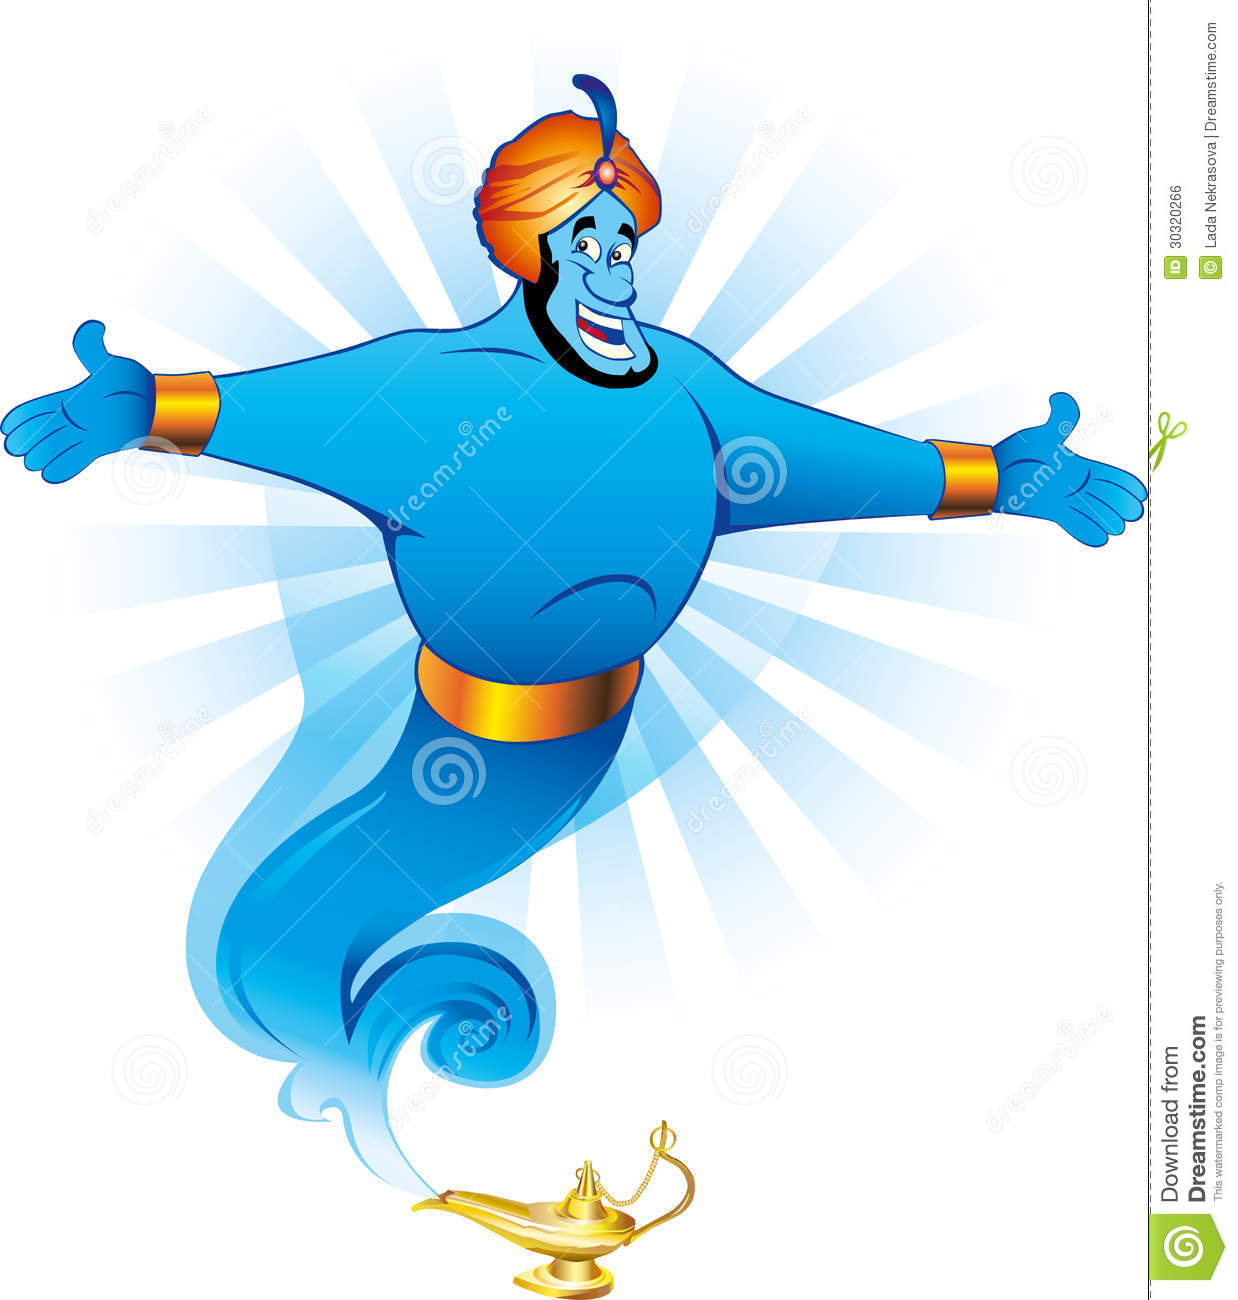 Magic Genie Granting The Wish Royalty Free Stock Image